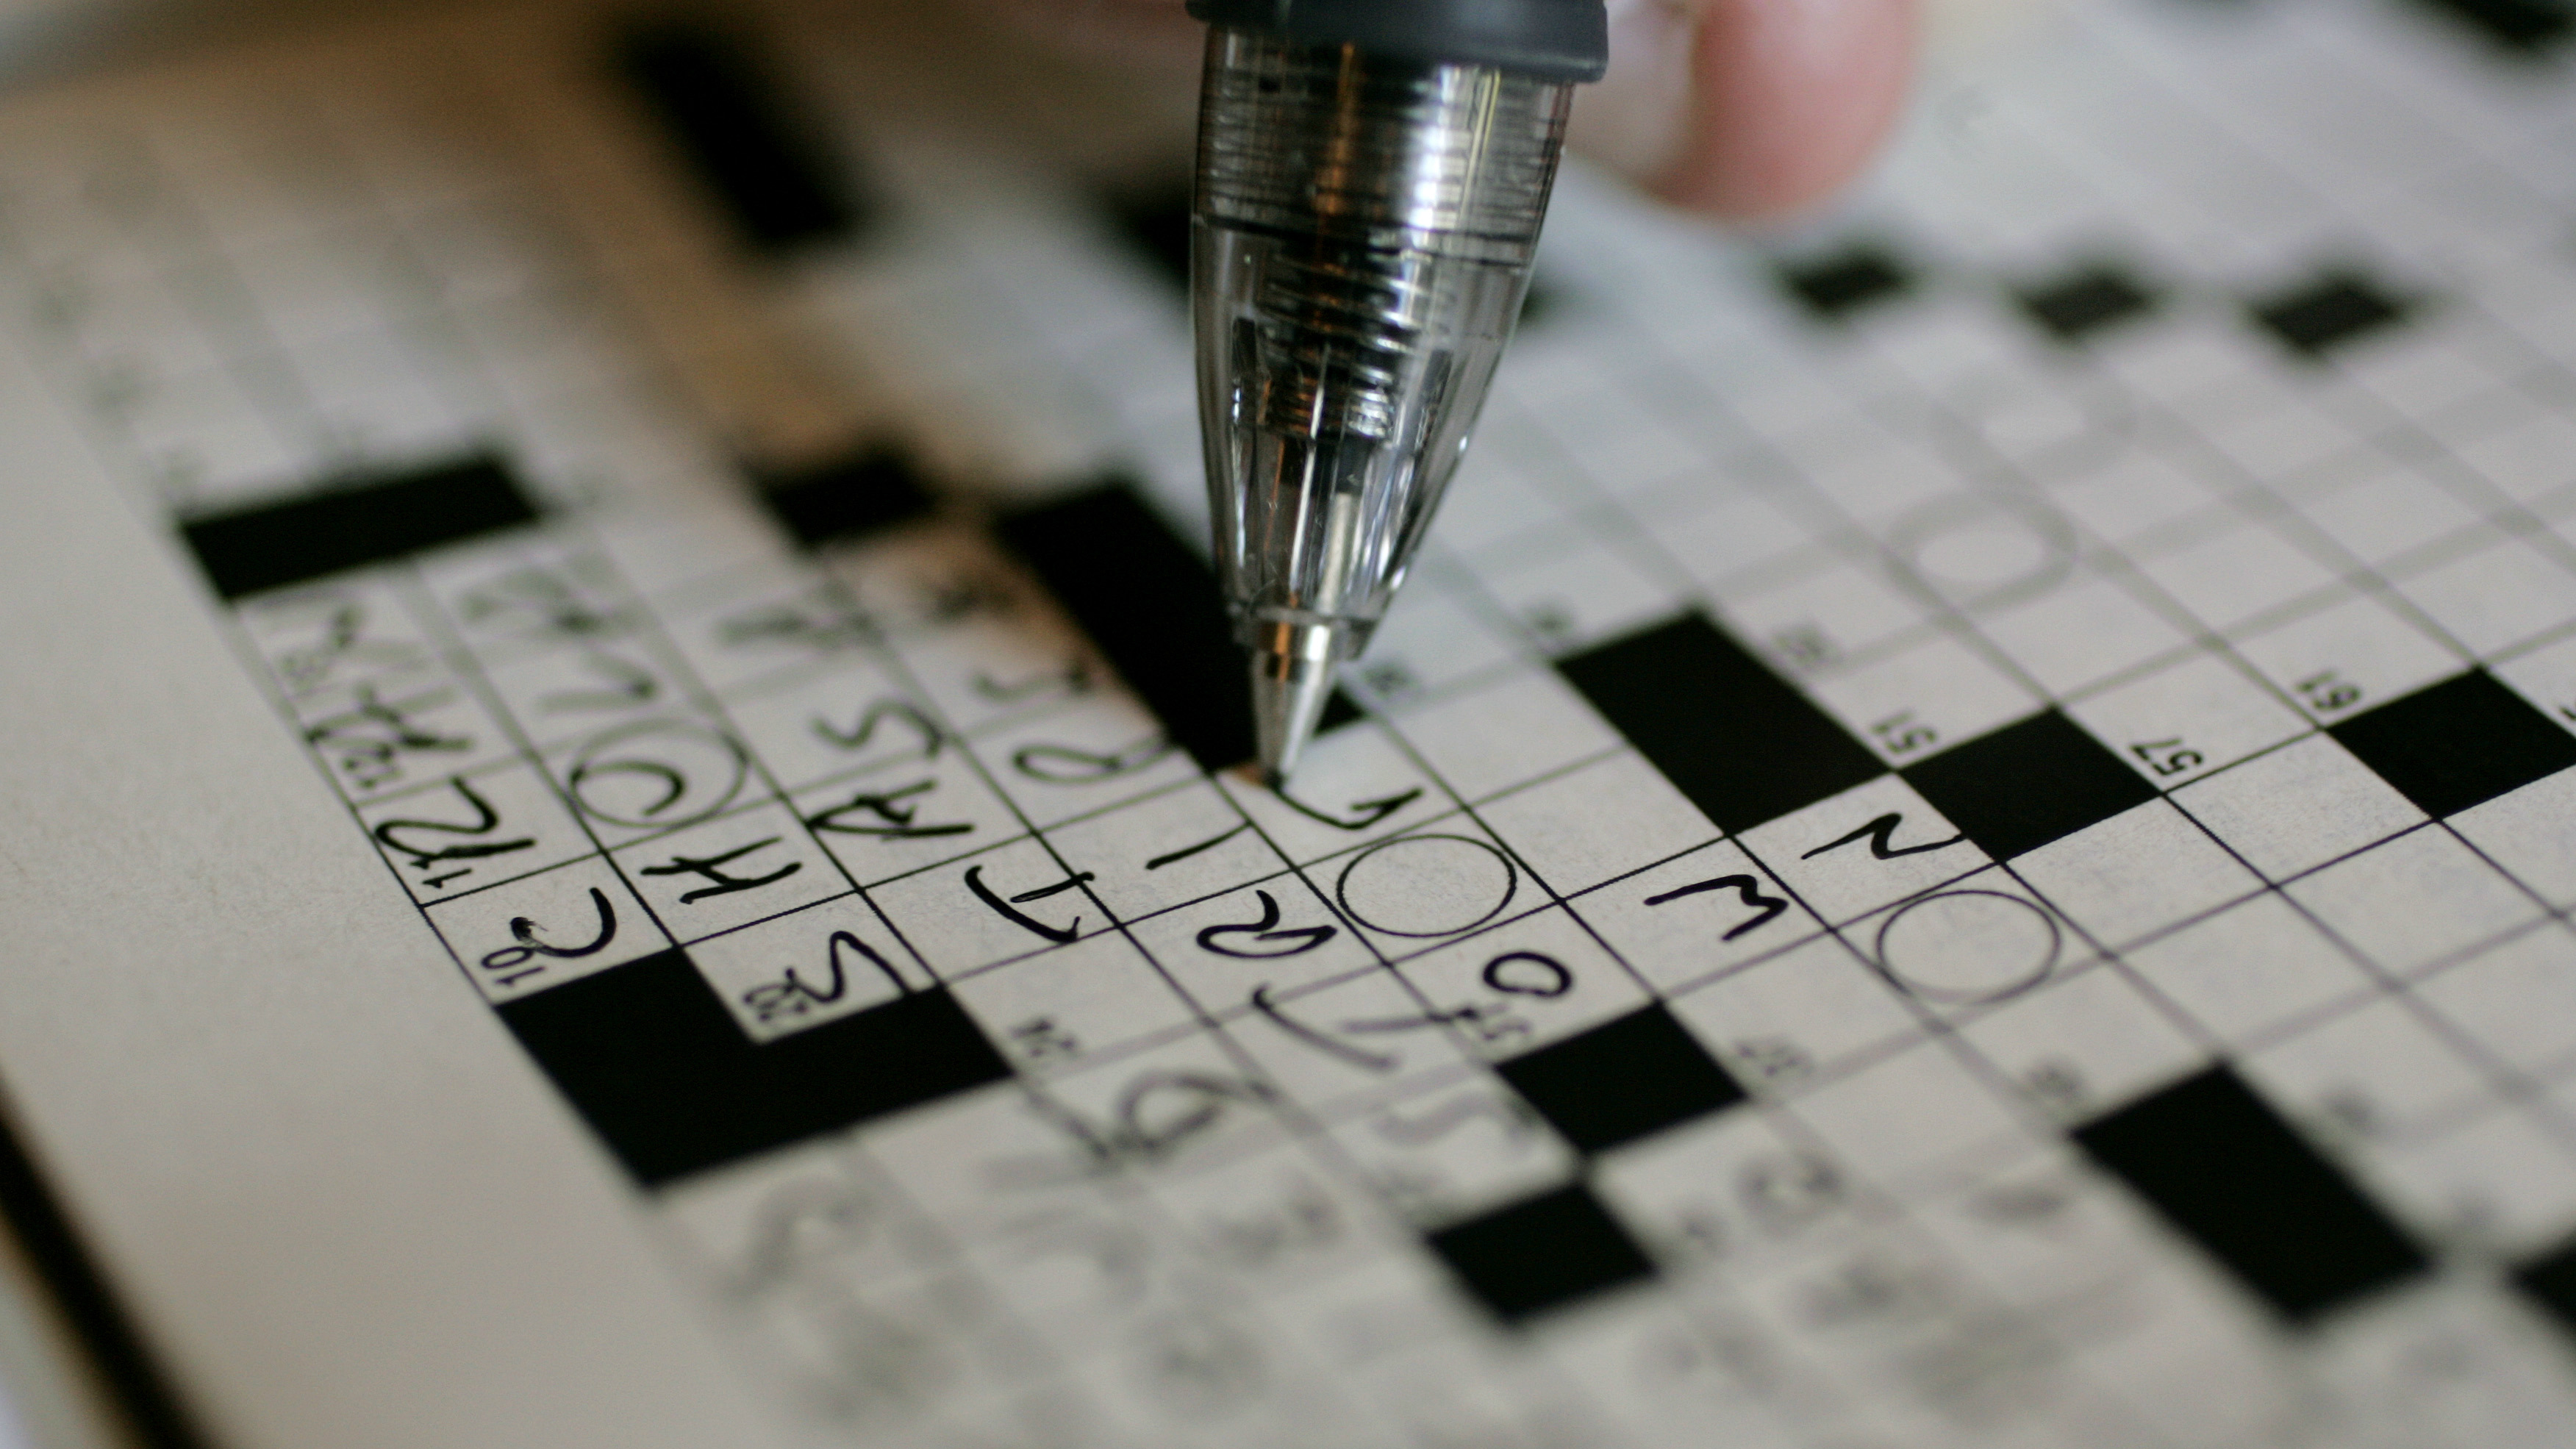 Selfish type crossword clue